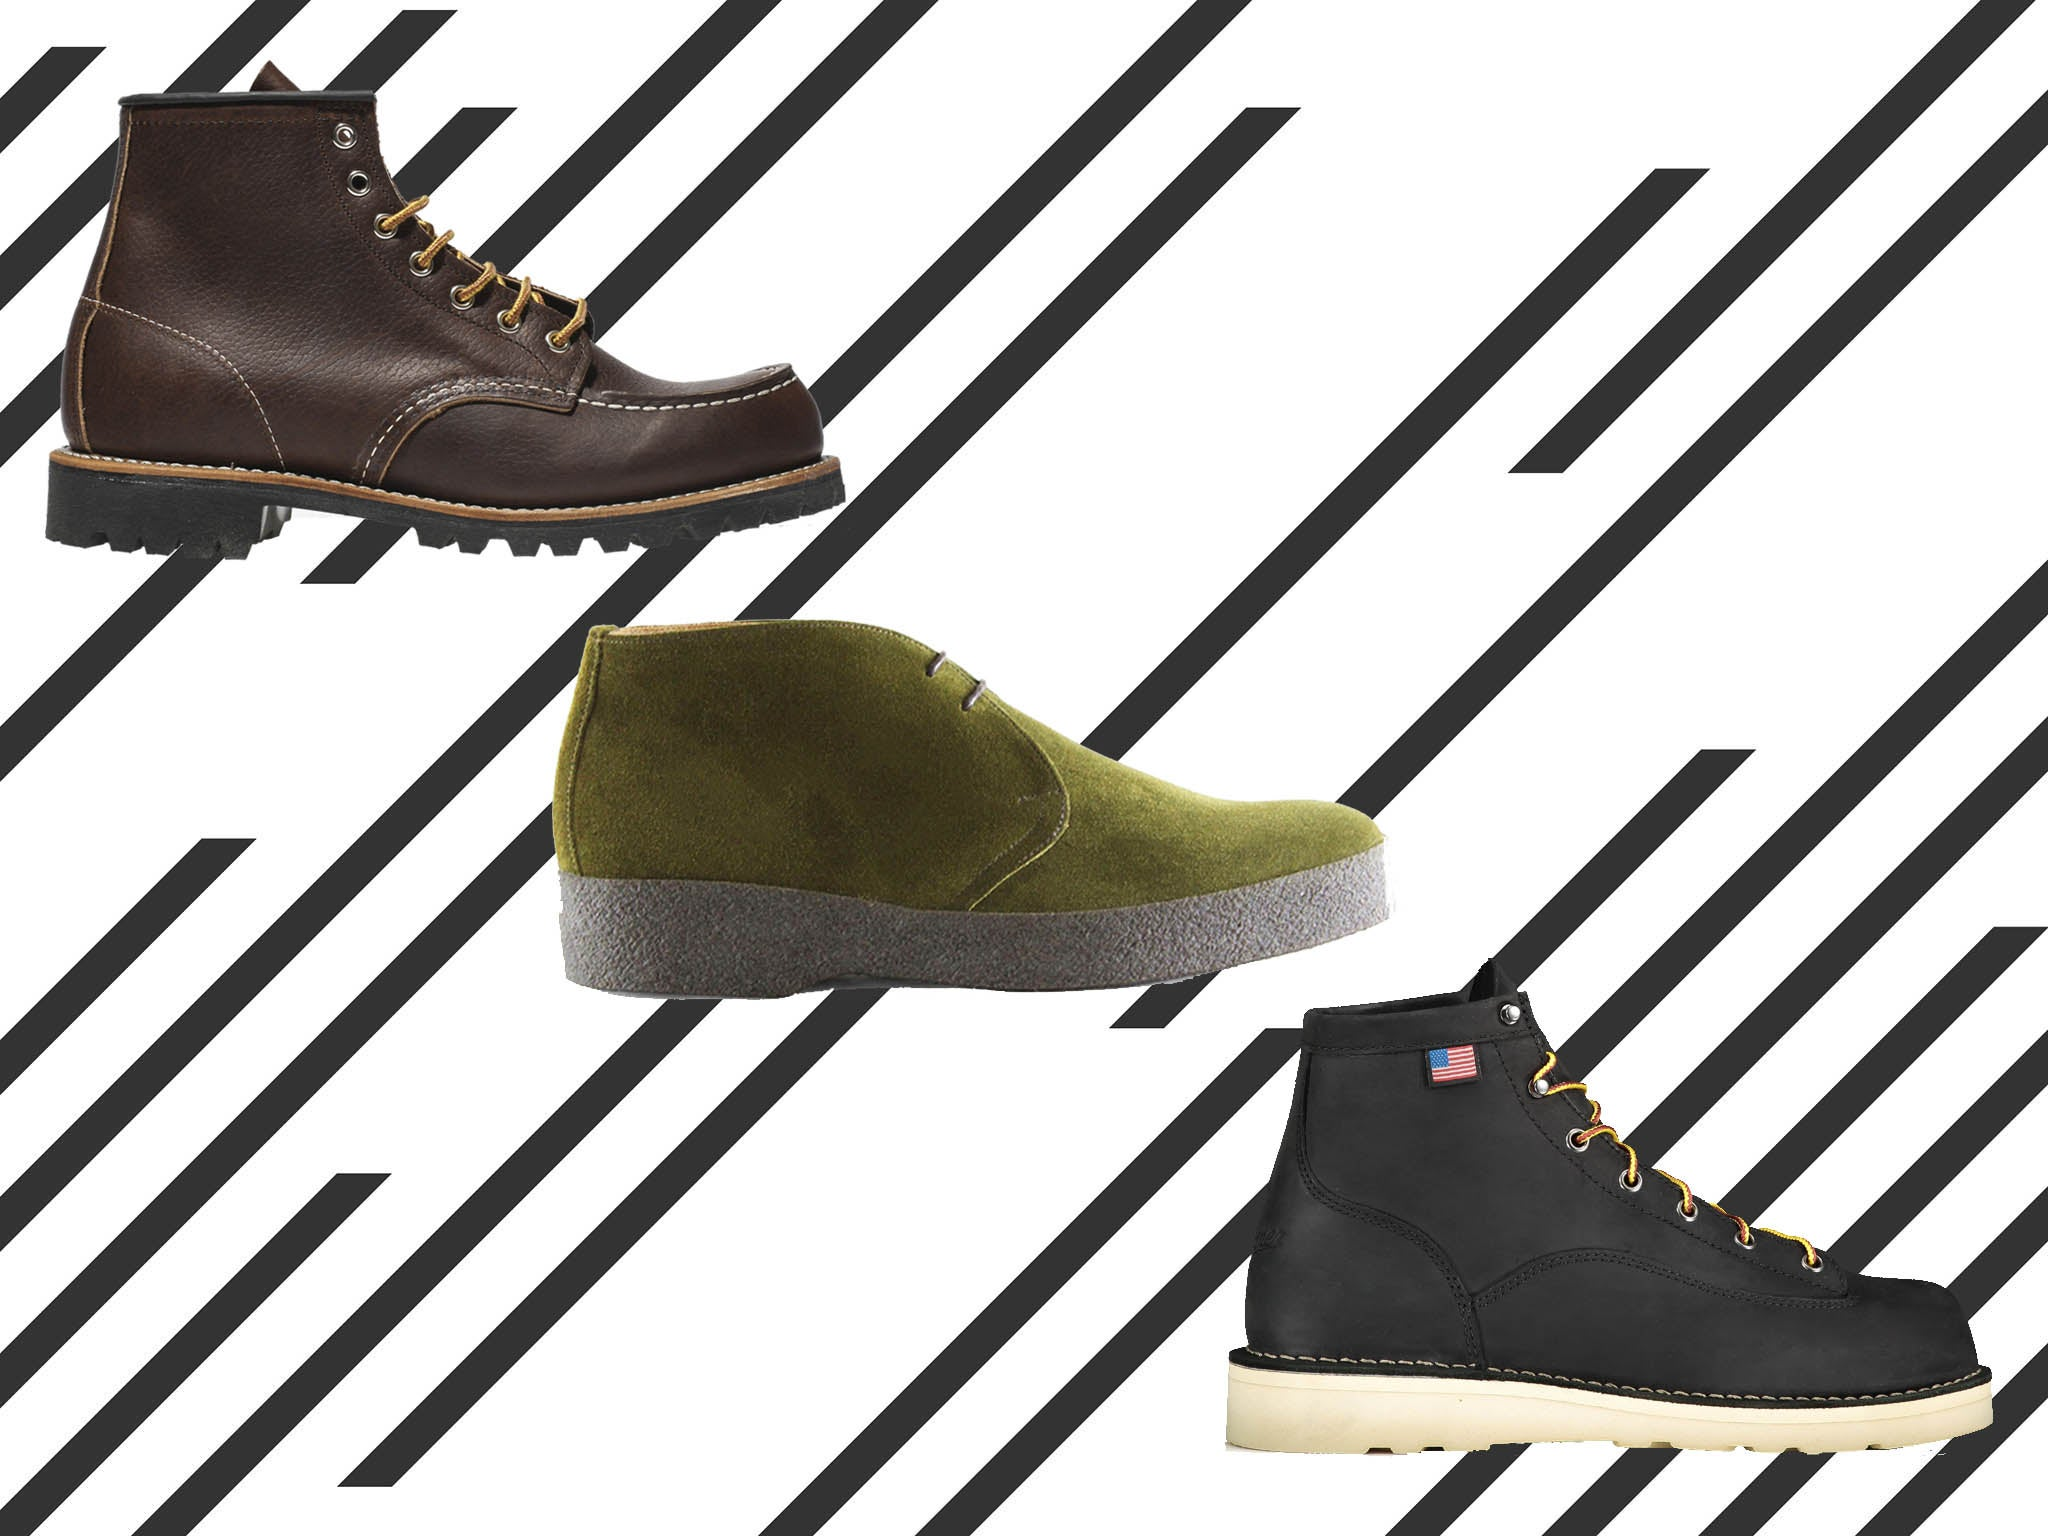 warmest mens winter boots in the world